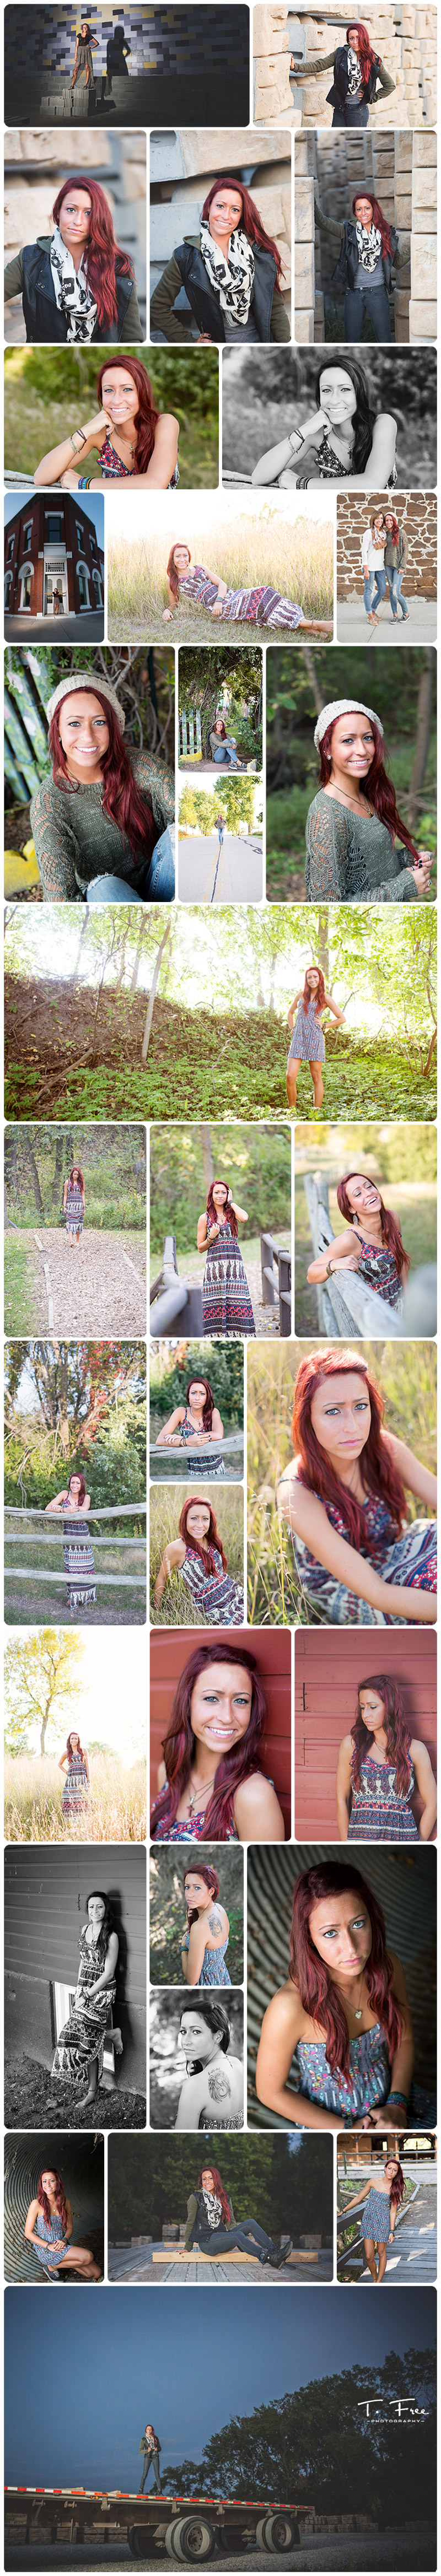 Images by millard north outdoor senior photographer.